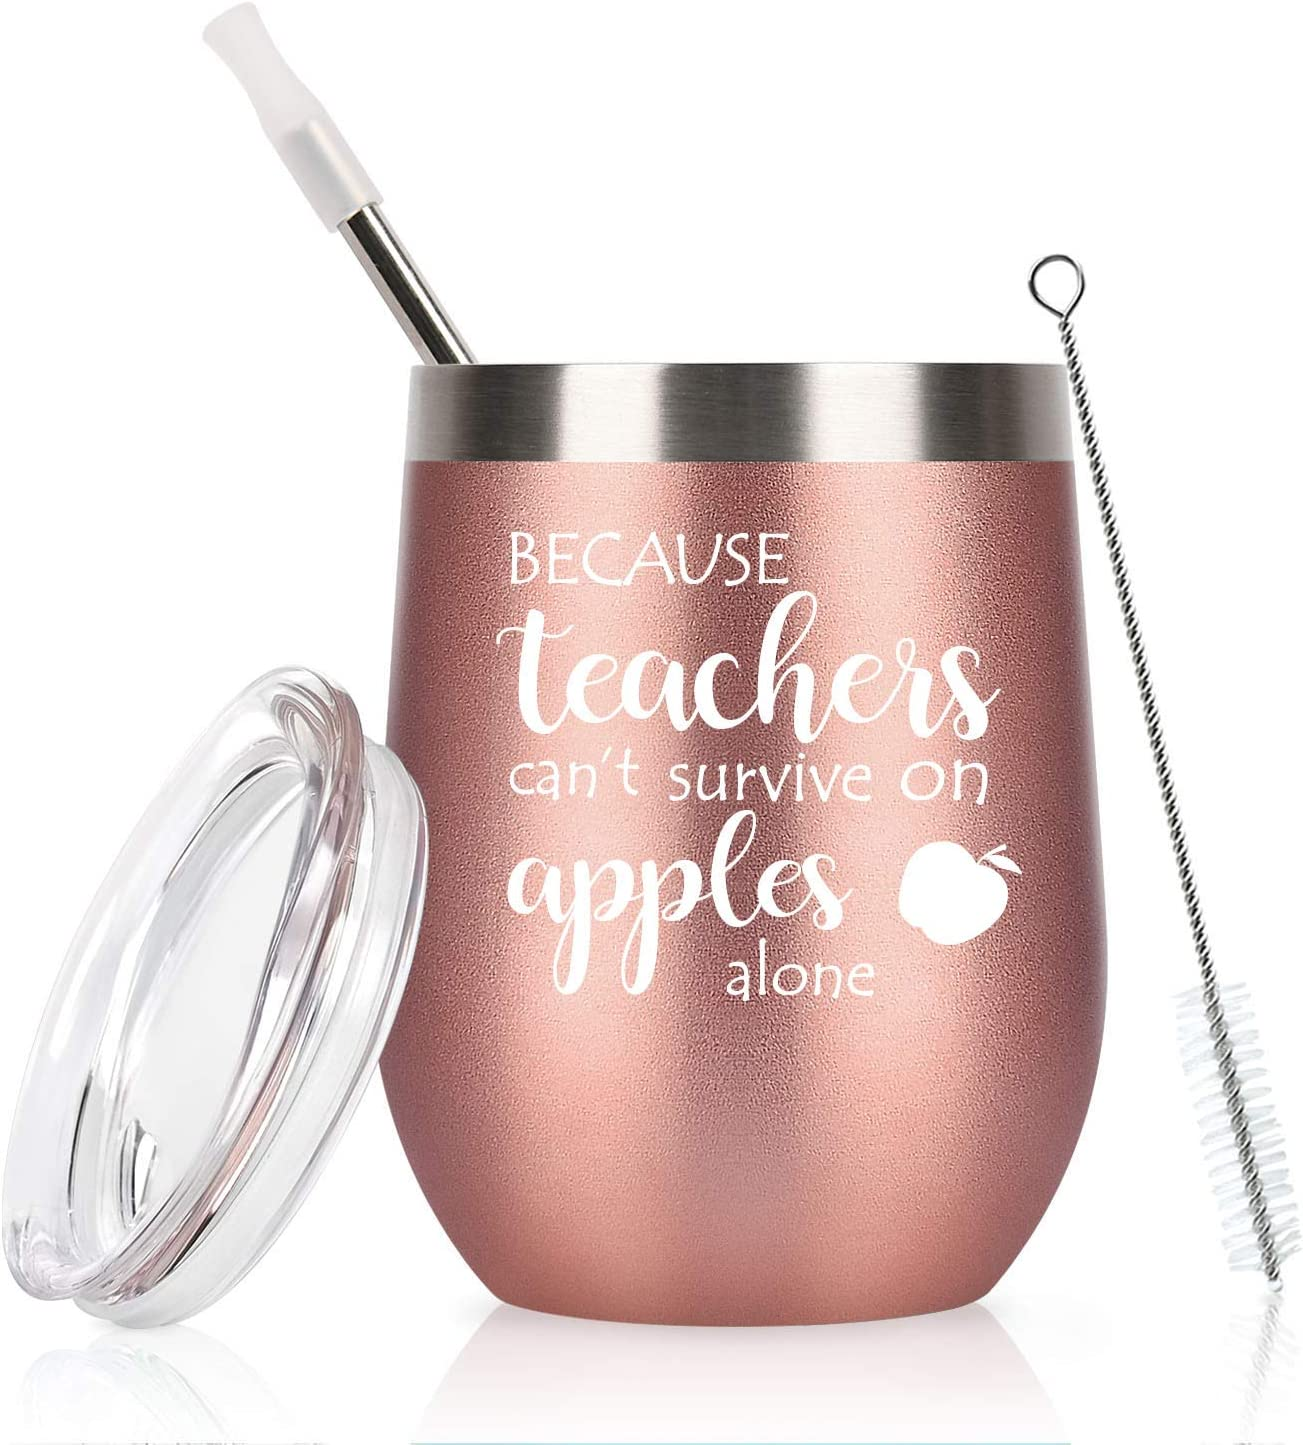 Funny Teacher Appreciation Gifts, Teachers Can't Survive on Apples Alone Wine Glass for Women, End Year Thank You Gifts for Teacher, 12 Oz Stainless Steel Wine Tumbler with Lid, Rose Gold